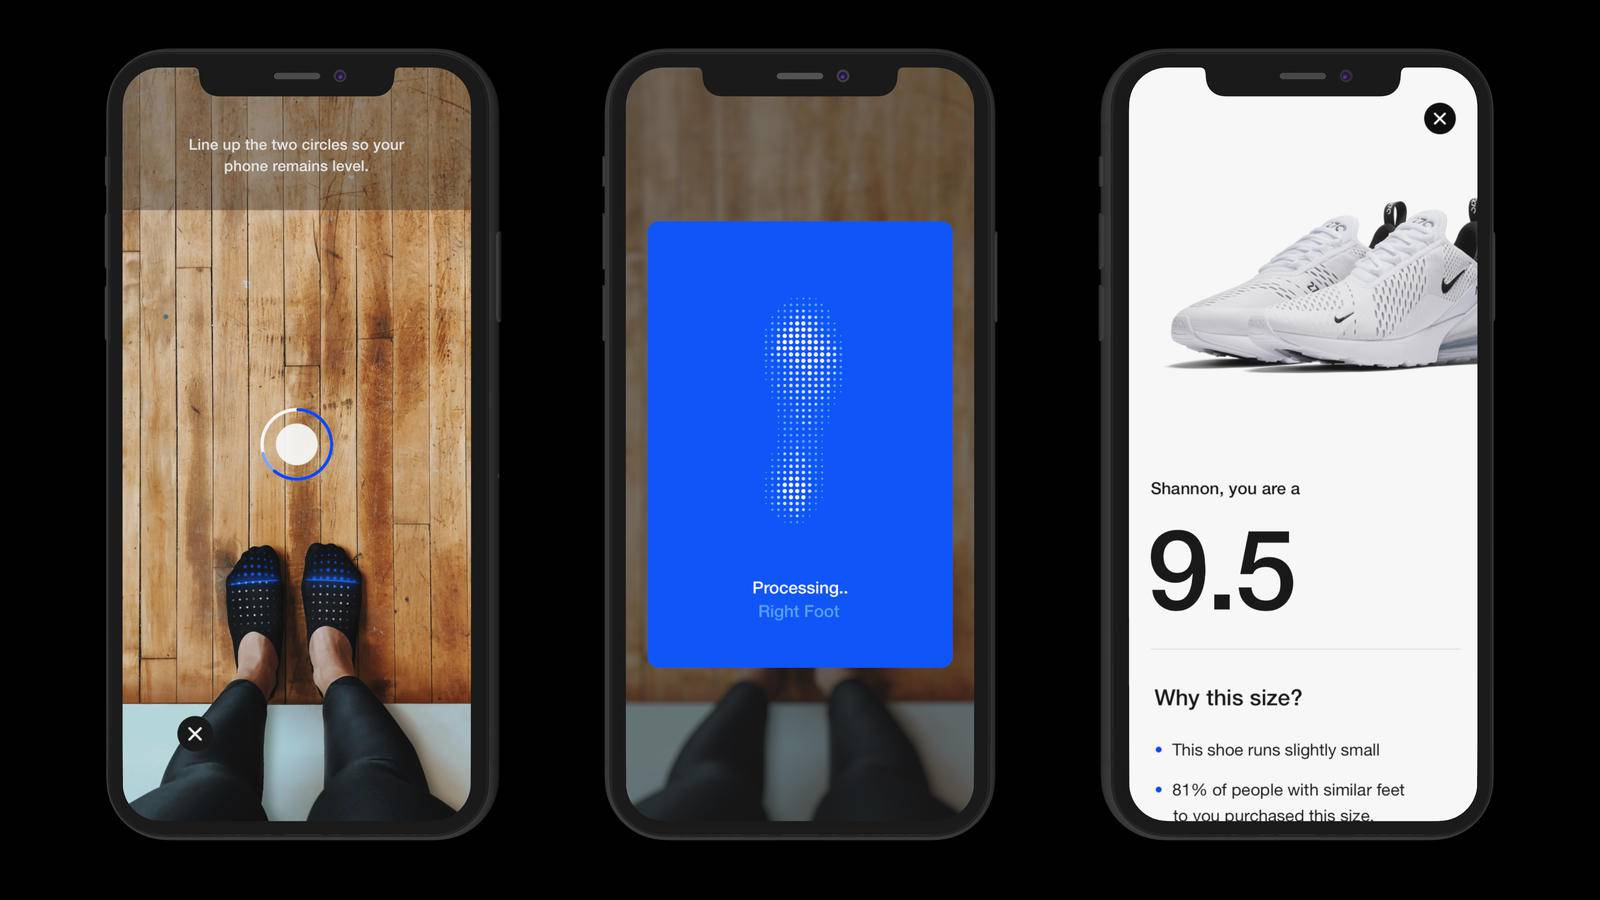 Three smartphone screens showing different actions of the Nike Fit app, from scanning to shoe recommendations